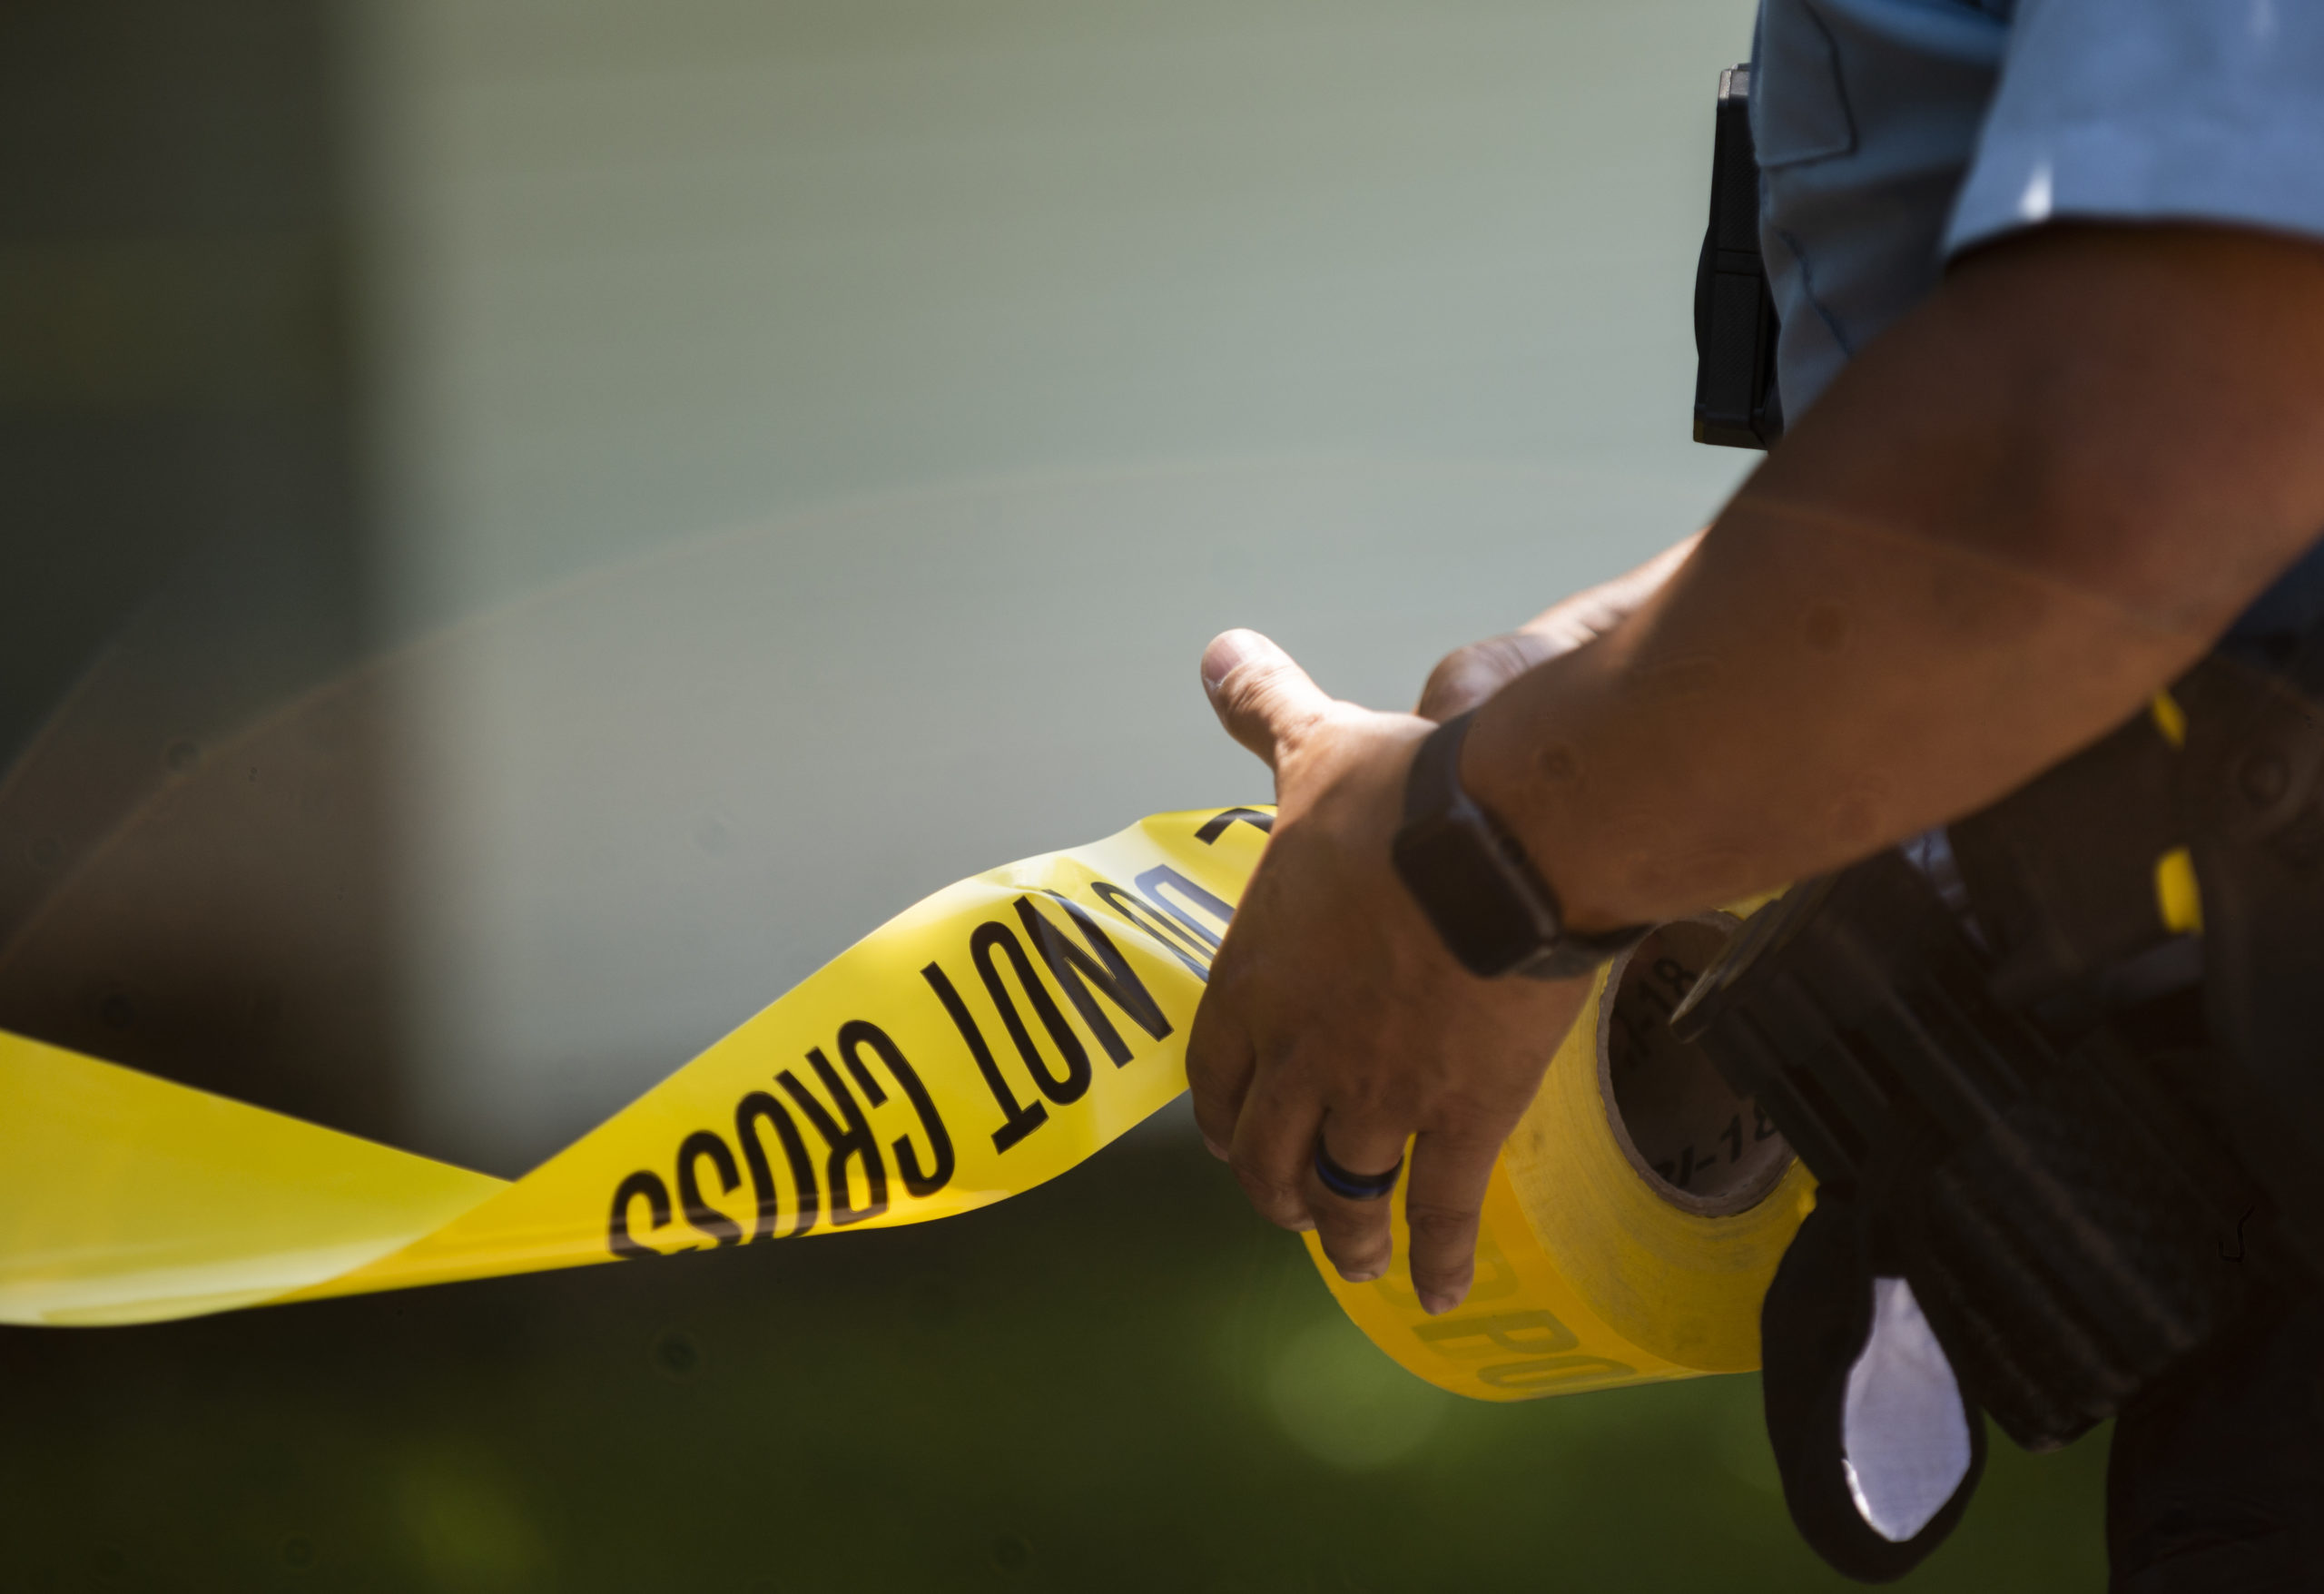 MINNEAPOLIS, MN - JUNE 16: A Minneapolis Police officers unrolls caution tape at a crime scene on June 16, 2020 in Minneapolis, Minnesota. The Minneapolis Police Department has been under increased scrutiny by residents and elected officials after the death of George Floyd in police custody on May 25. (Photo by Stephen Maturen/Getty Images)